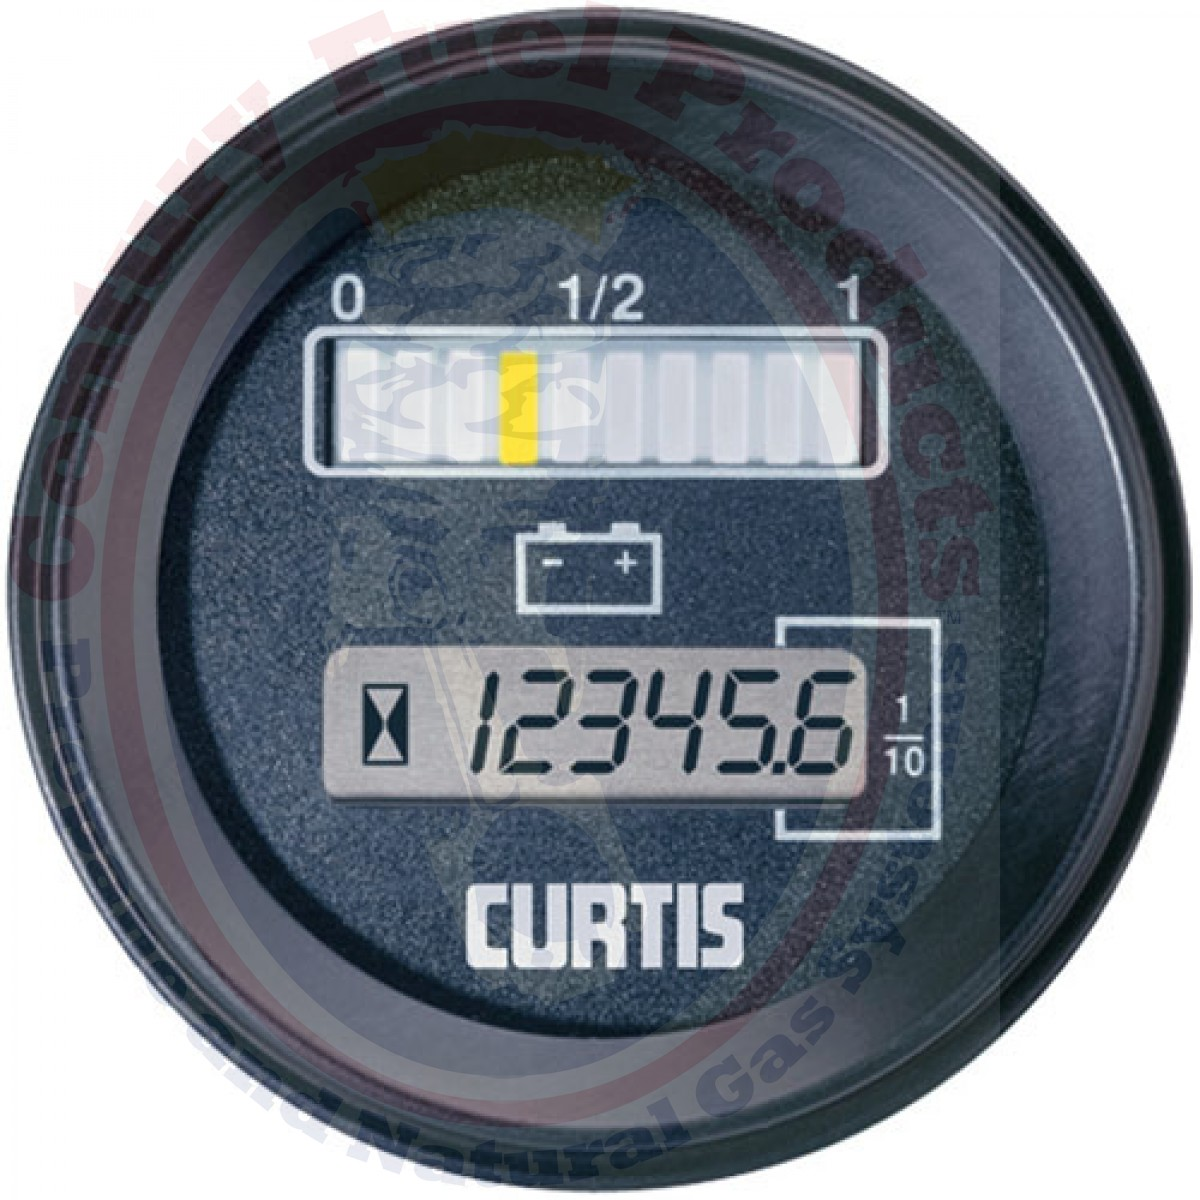 7 2 Volt Hour Meters : Rb bcj v with hour meter and lockout bdi gauge